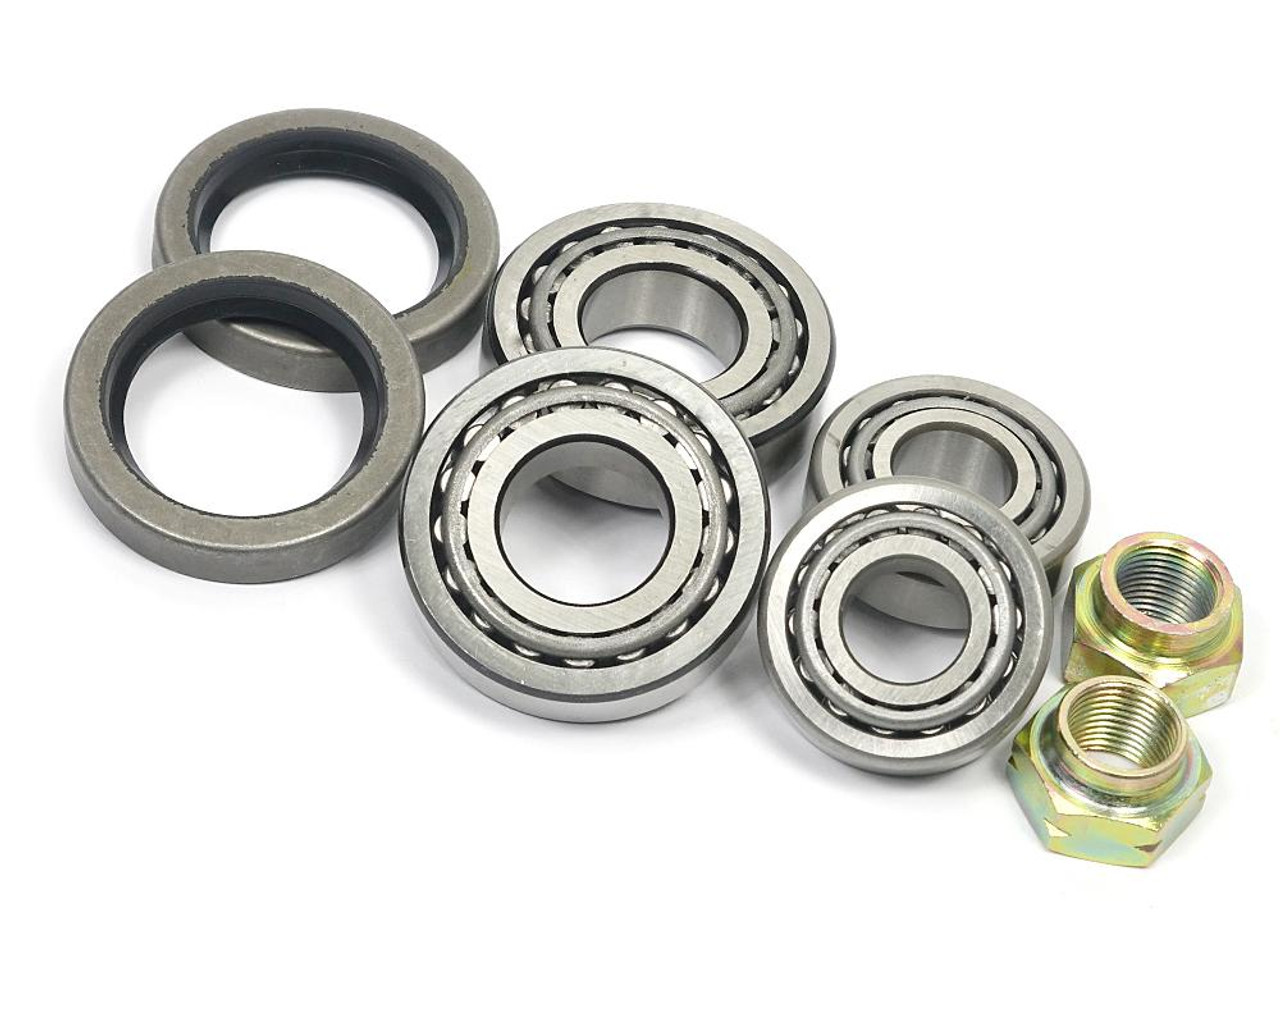 Auto Ricambi Front Wheel Bearing Kit - SAVE 20% FIAT 124 Spider Parts